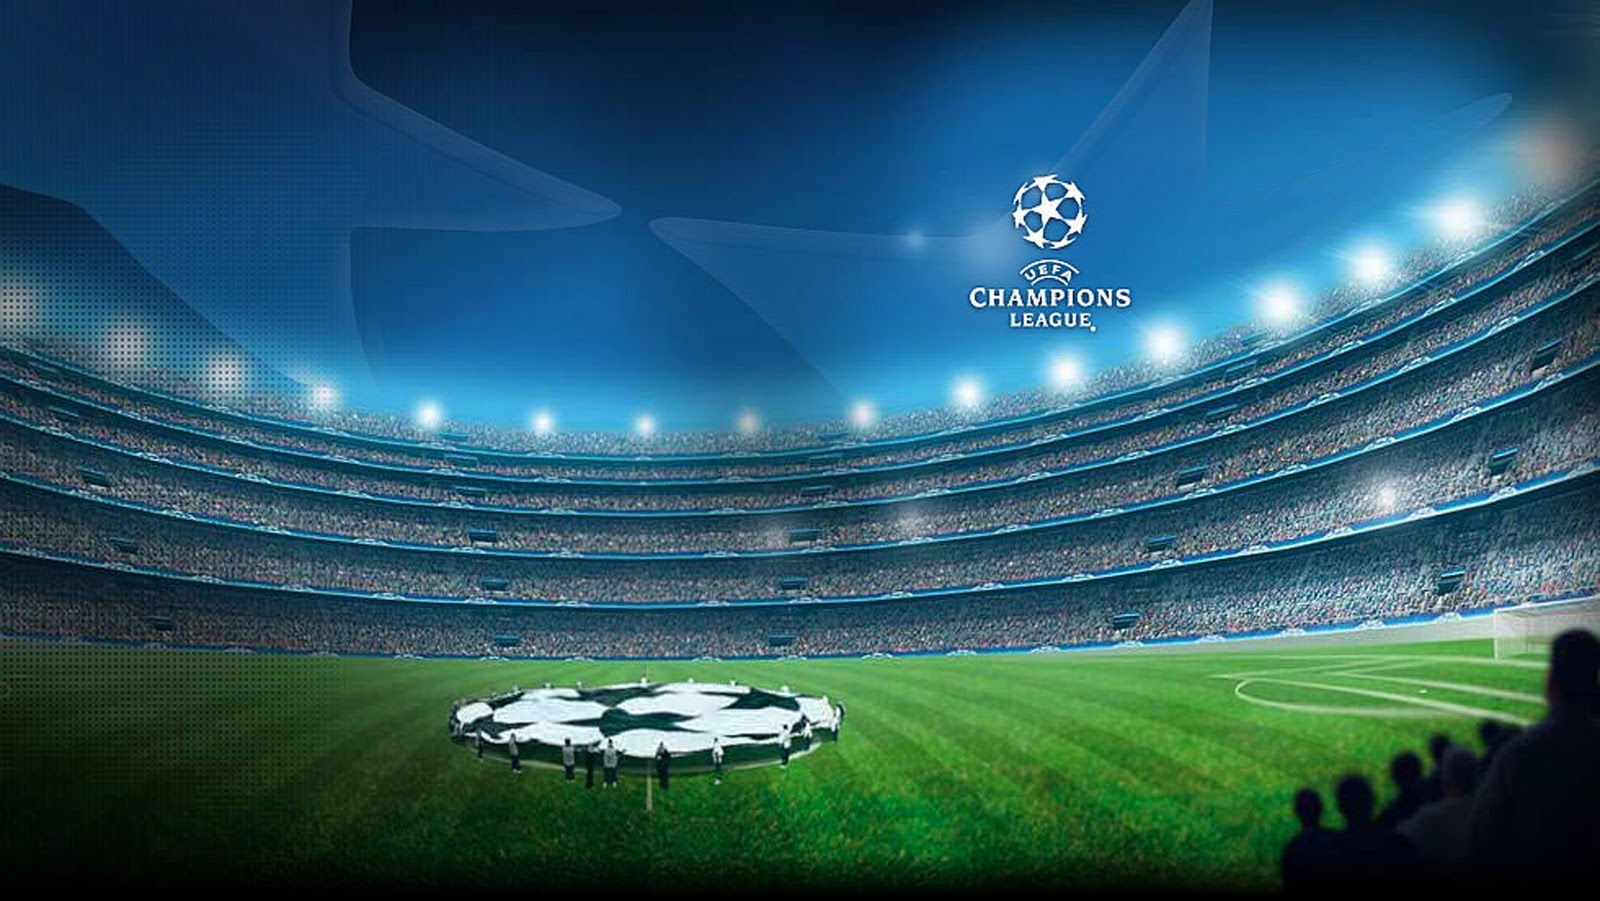 UEFA Champions League 2013 HD Wallpapers Wallpapers